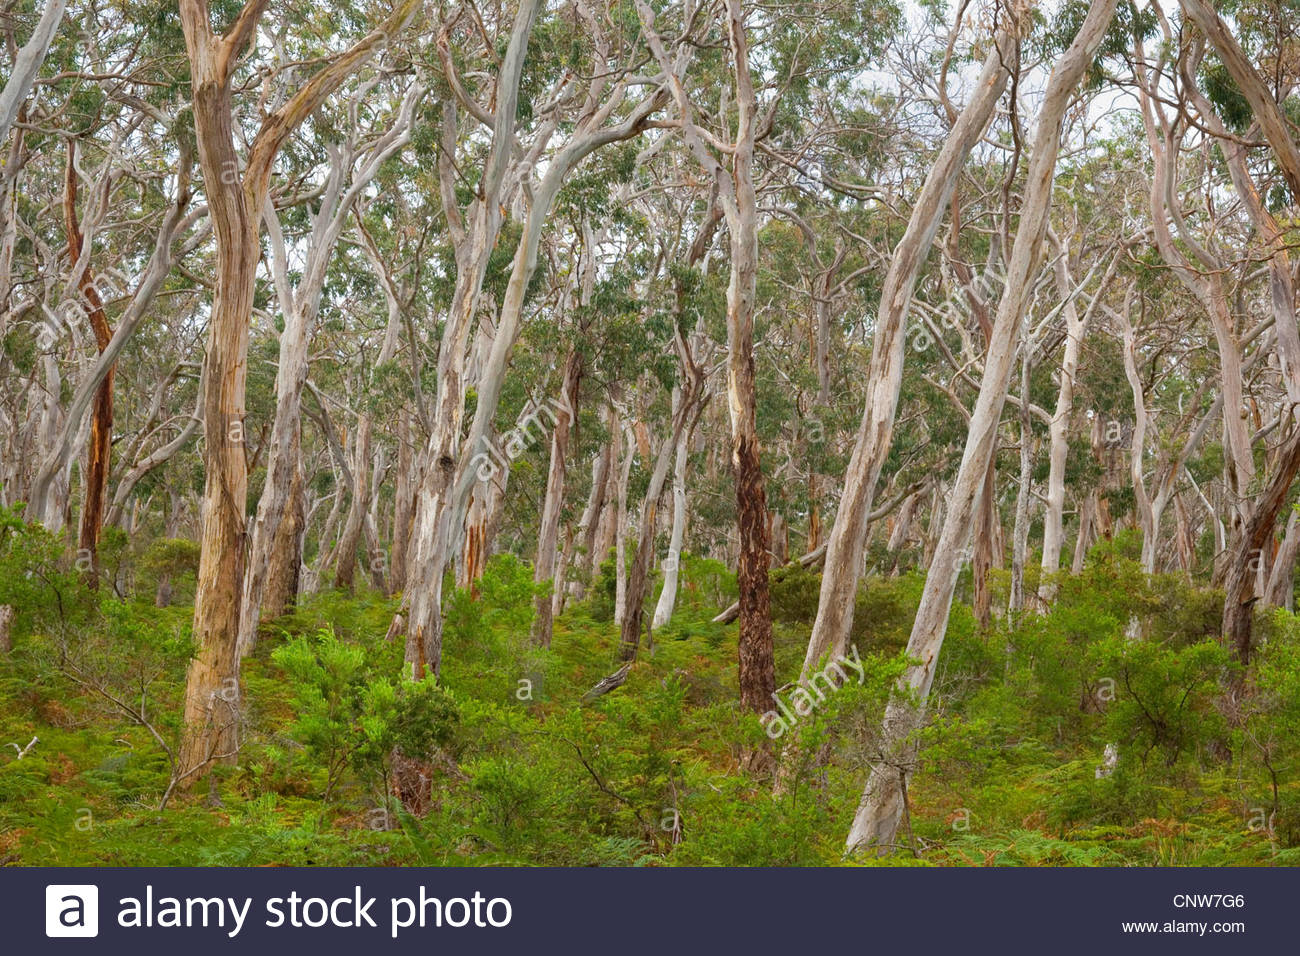 Manna gum, Eucalypt Forest, White Gum, Ribbon Gum (Eucalyptus viminalis), view into an eucalypt forest with Manna - Stock Image